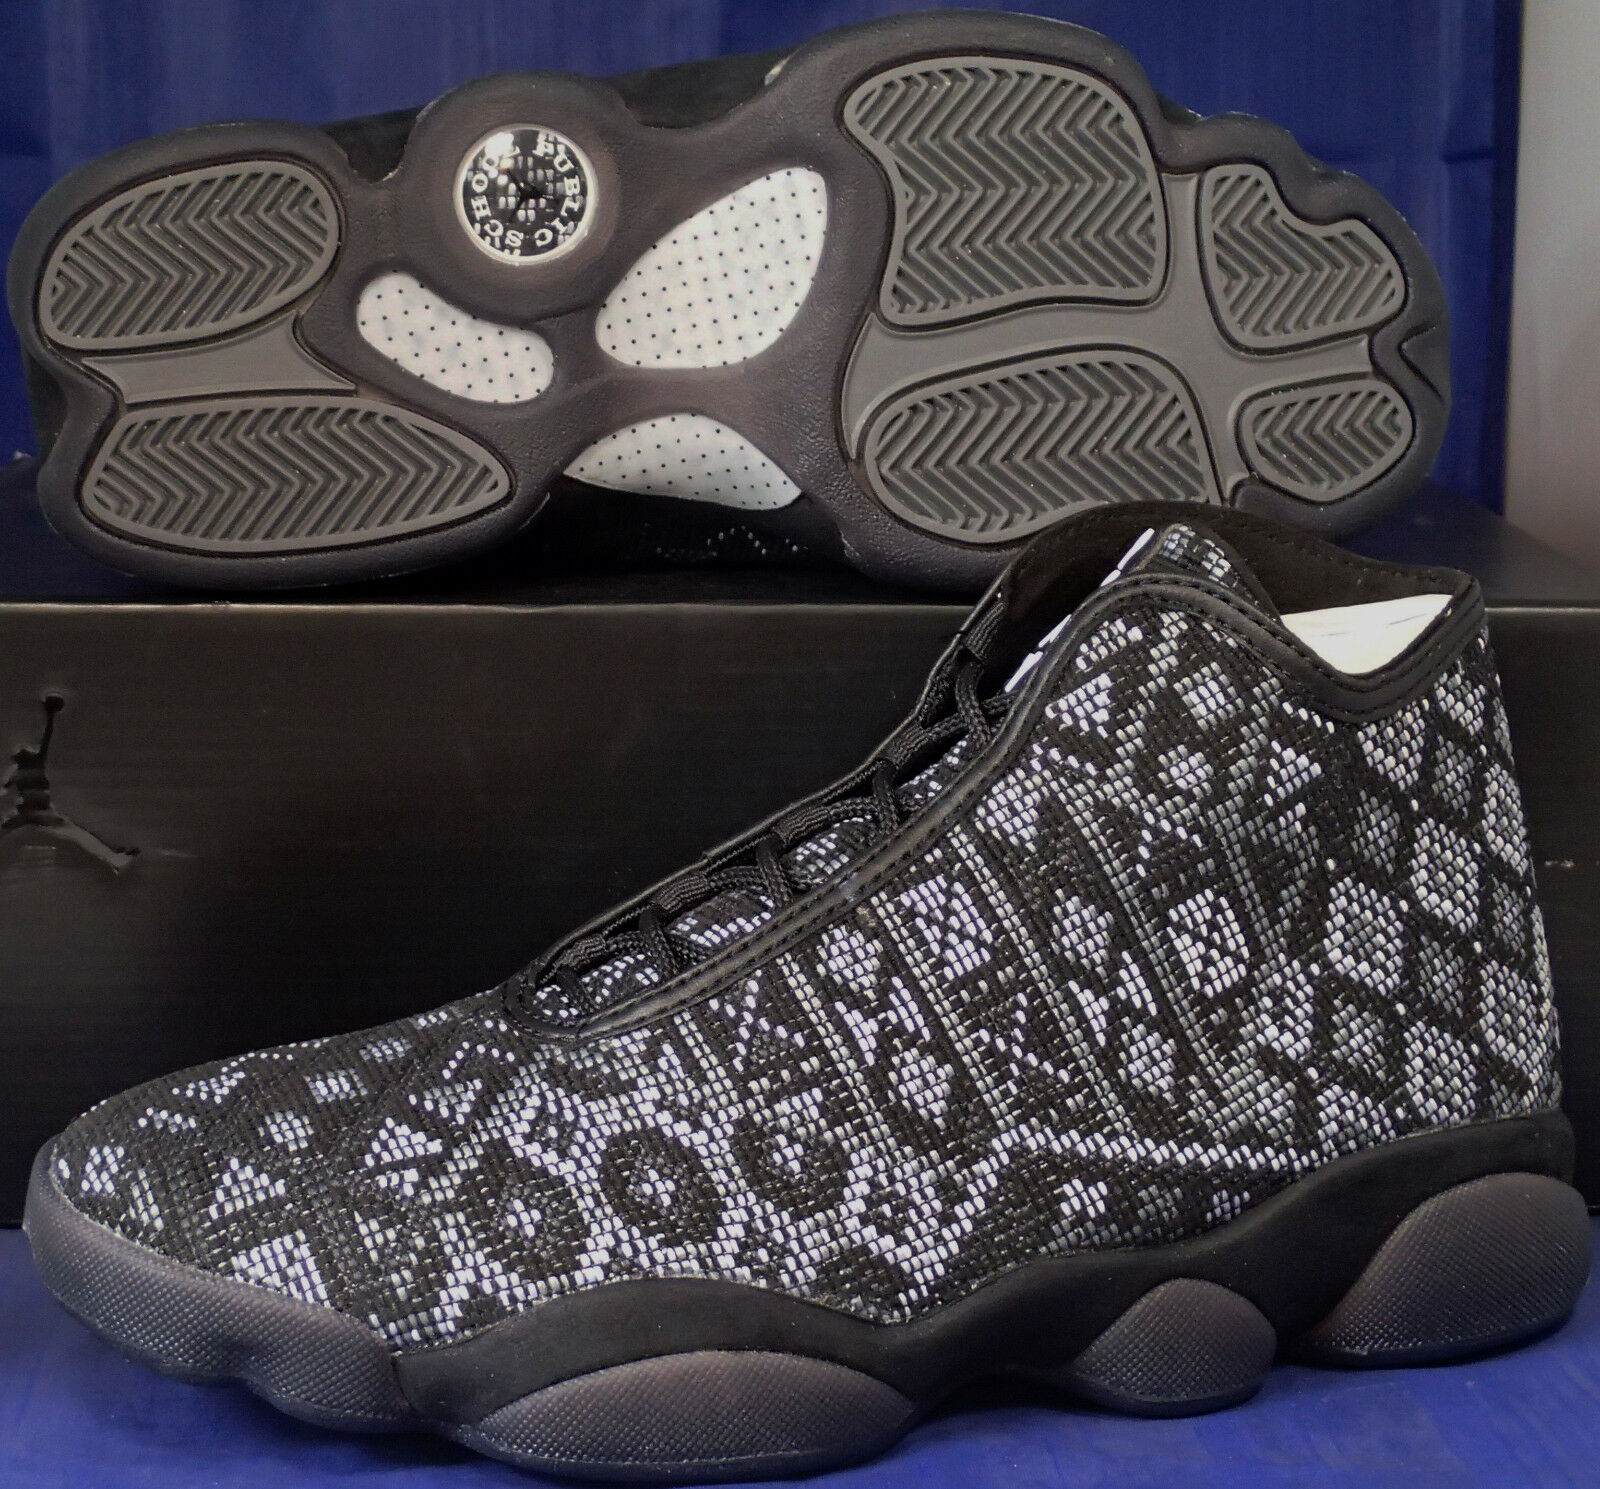 3f10500d5a Nike Air Jordan Horizon Premium PSNY Public School New York SZ 8  (827432-002. Nike Air Max ...